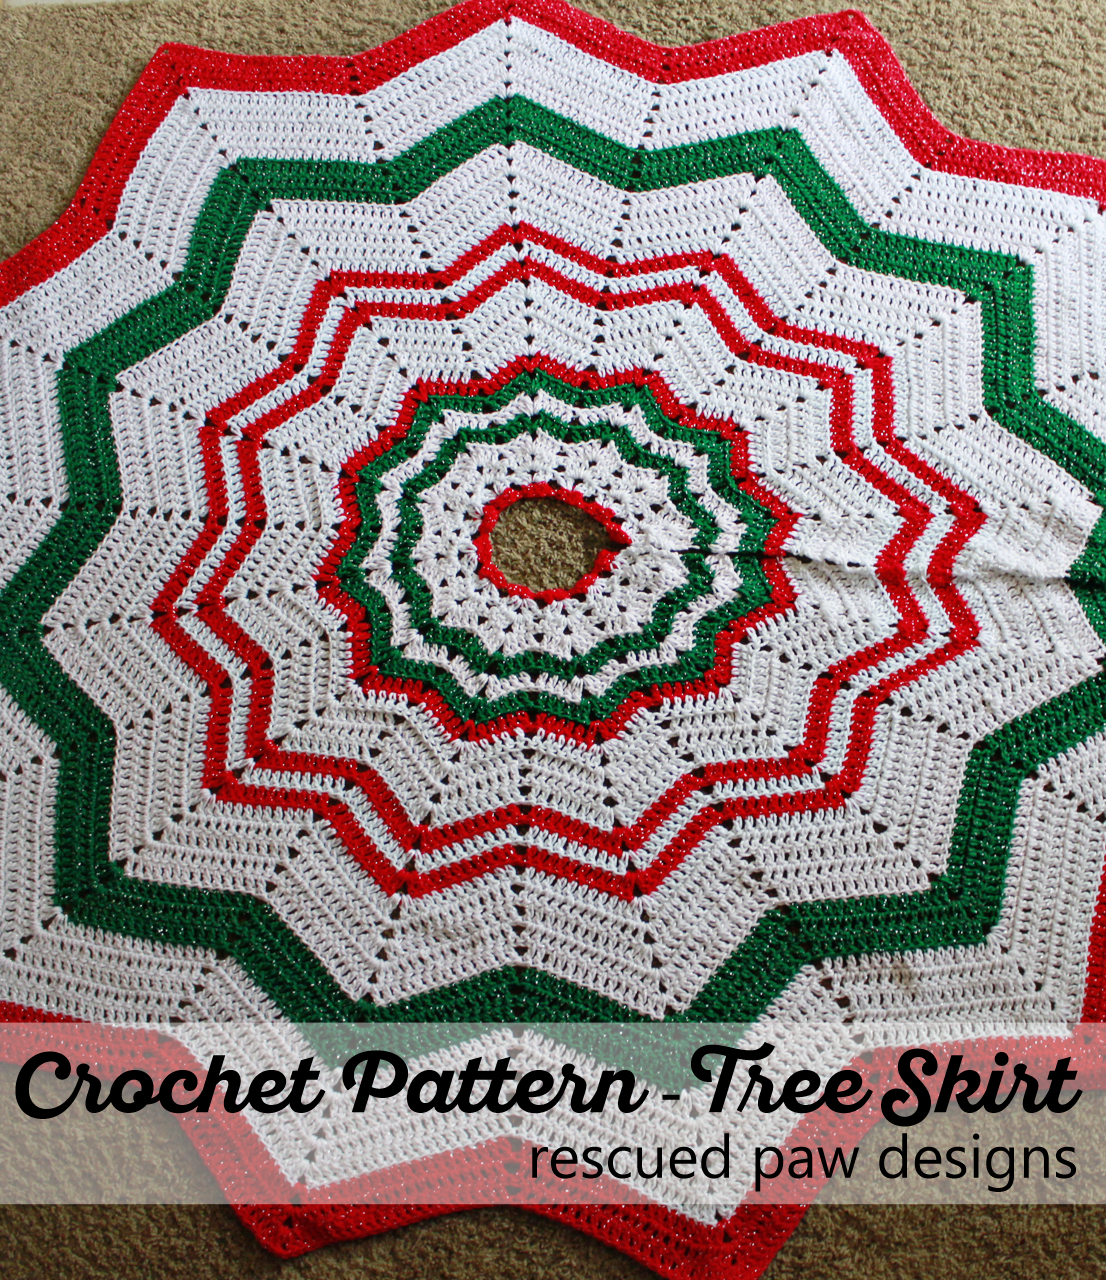 Crochet tree skirt pattern free crochet pattern tree skirts crochet tree skirt pattern free crochet pattern bankloansurffo Choice Image